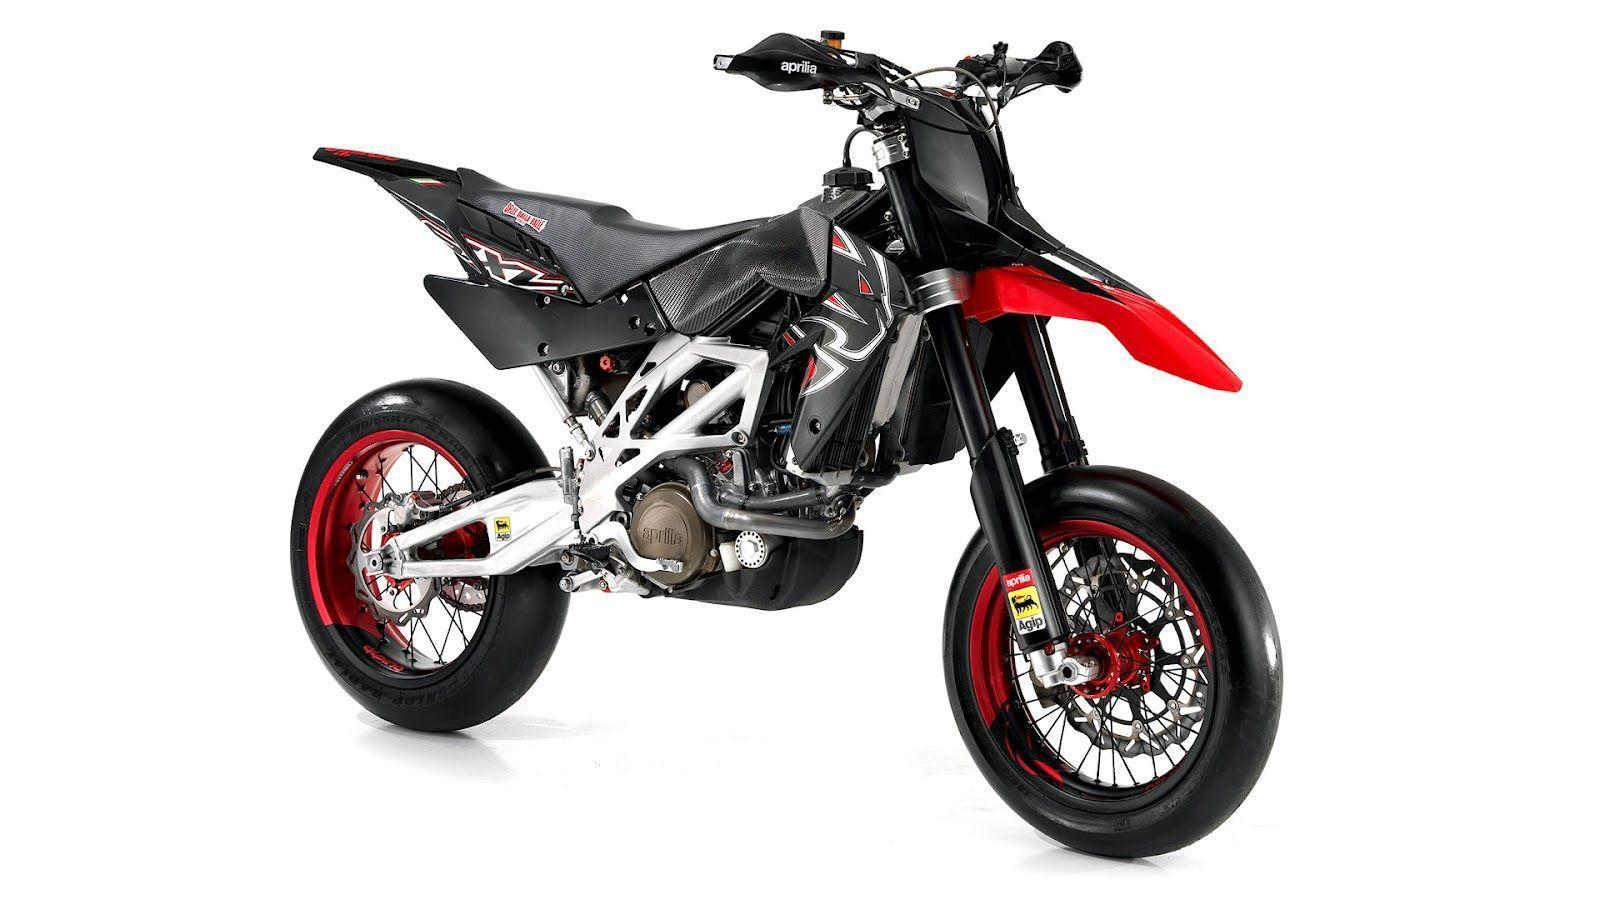 Aprilia SXV 550 Supermoto high quality wallpapers